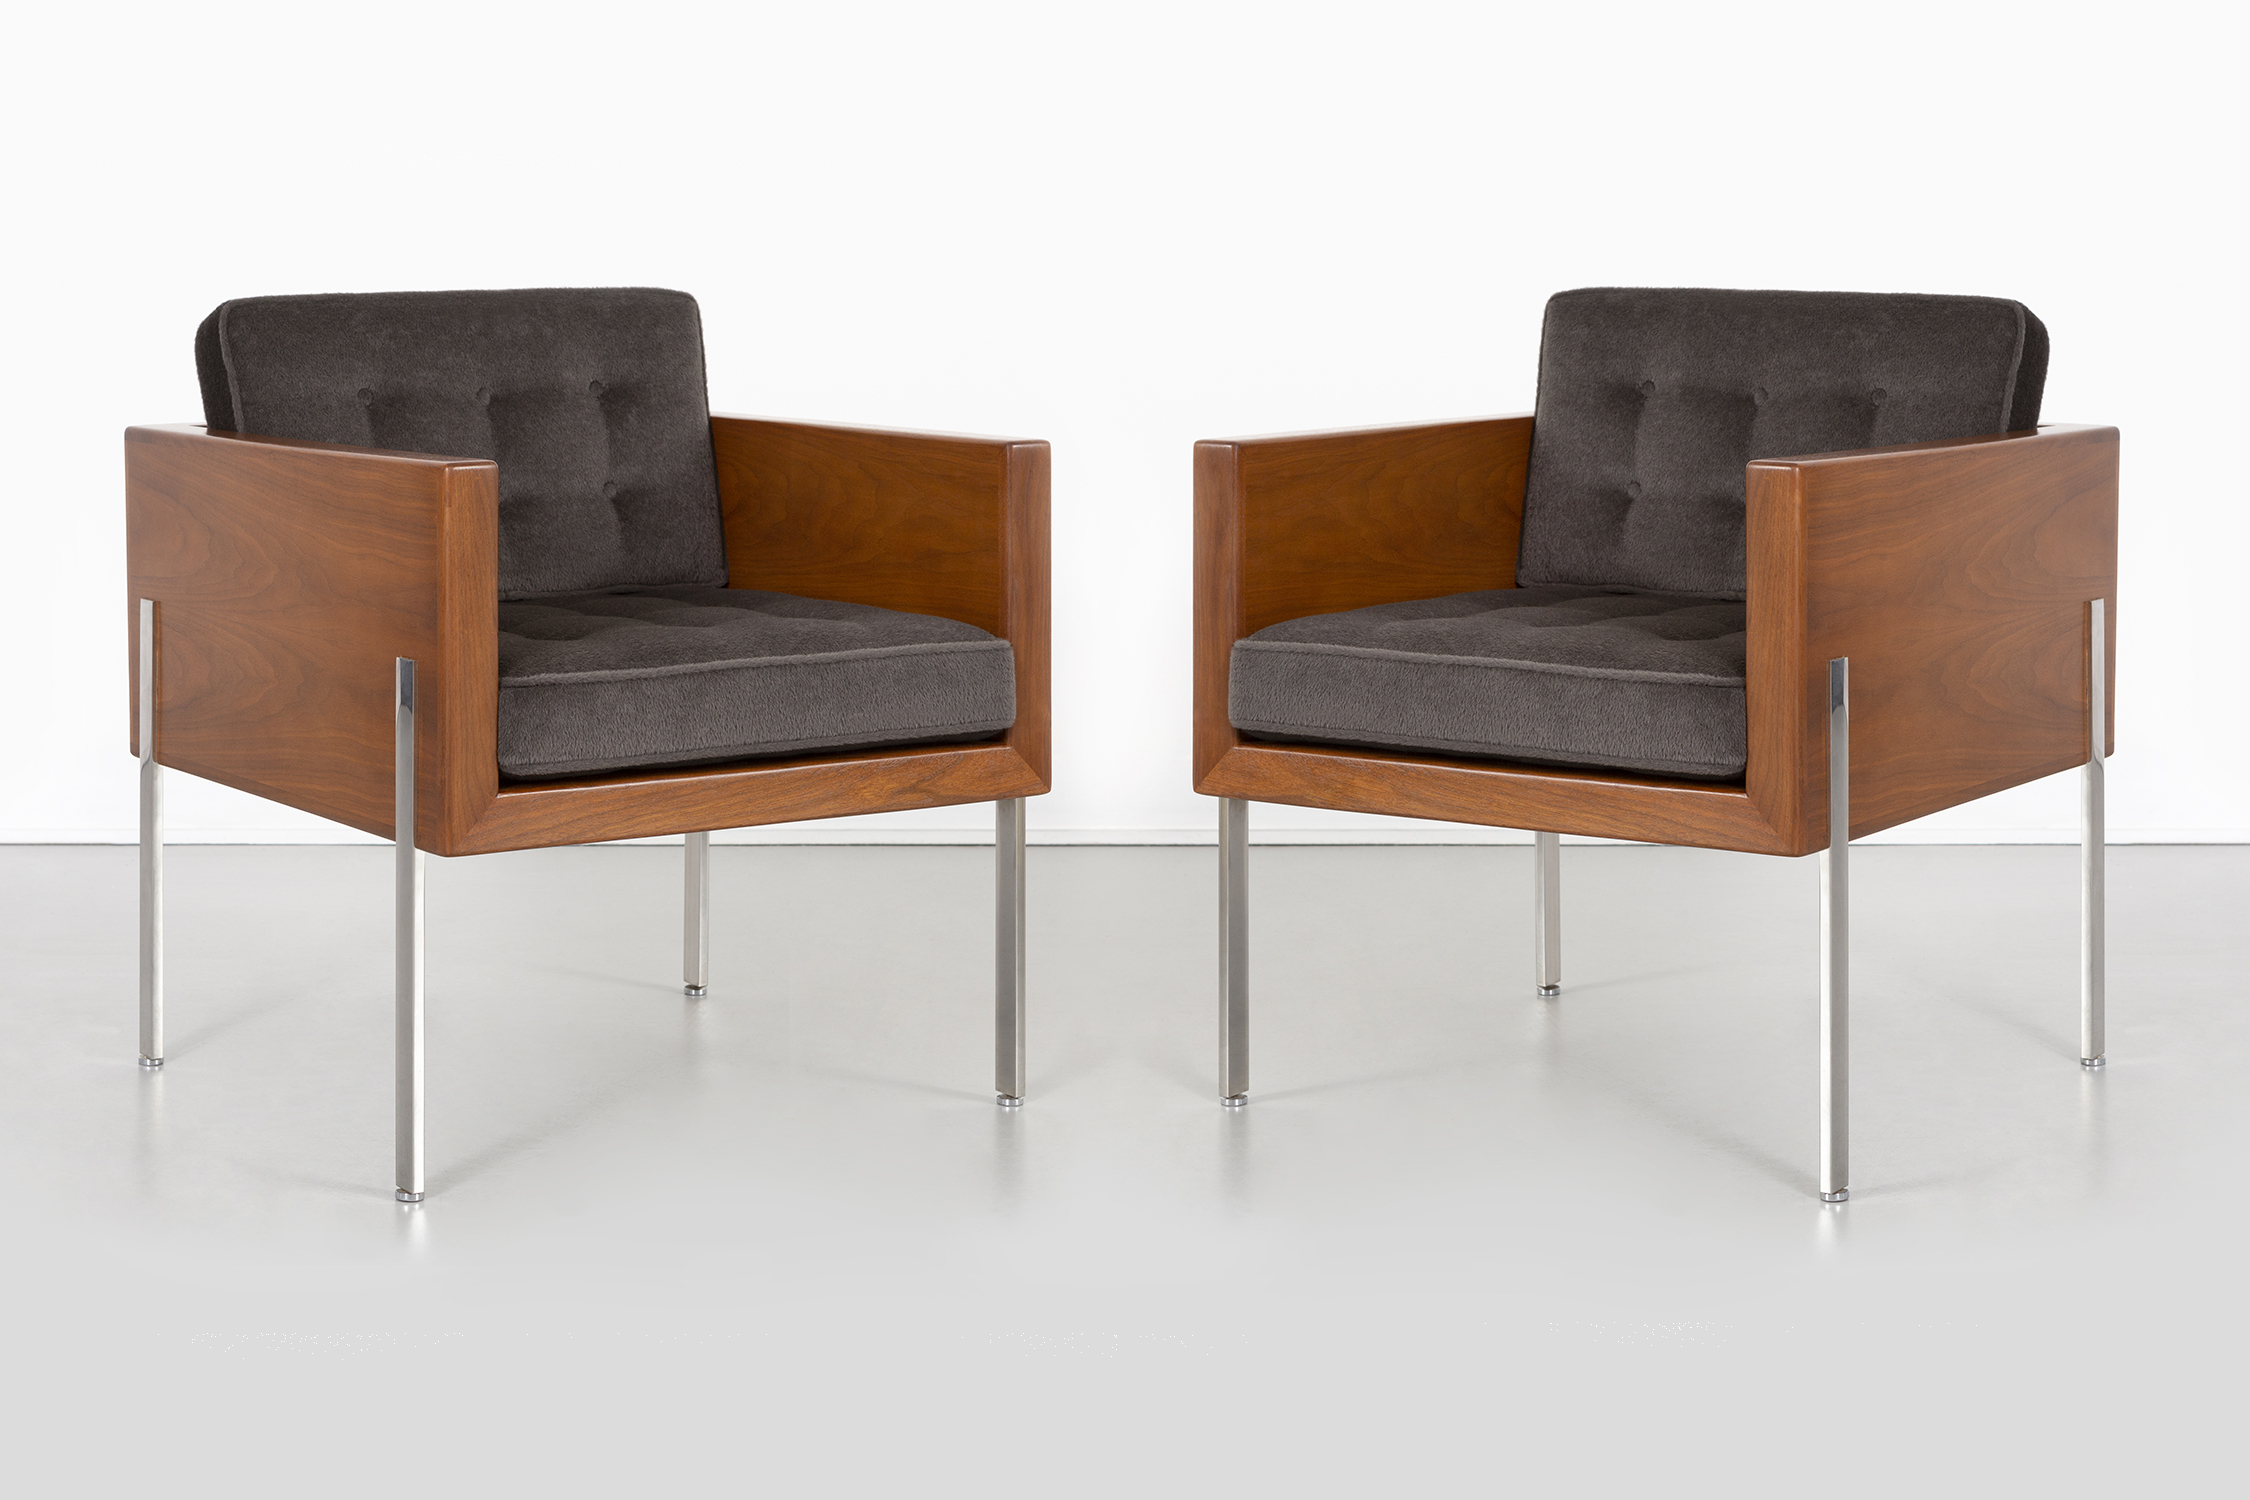 Cube Chairs Pair Of Harvey Probber Architectural Series Cube Chairs